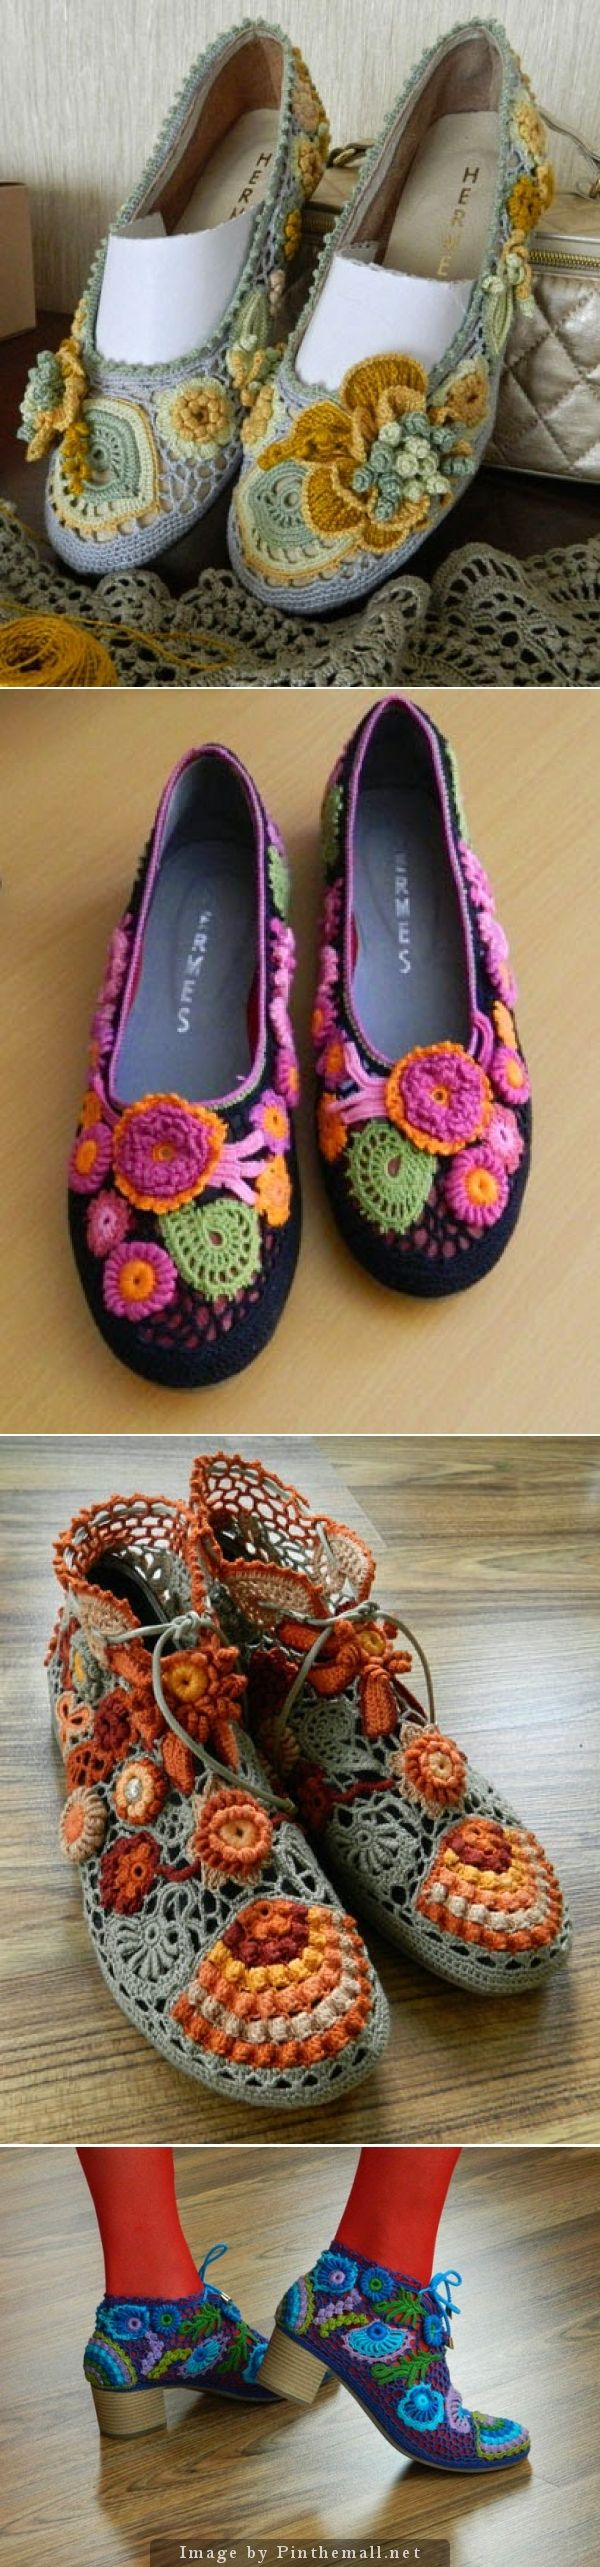 "wäre schön, wenn hier zu kaufen wäre.""Totally fabulous #Irish #Crochet #Shoes by Ukranian designer Olena Melnyk. Truly Awesome! #KnittingGuru ** http://www.pinterest.com/KnittingGuru"""